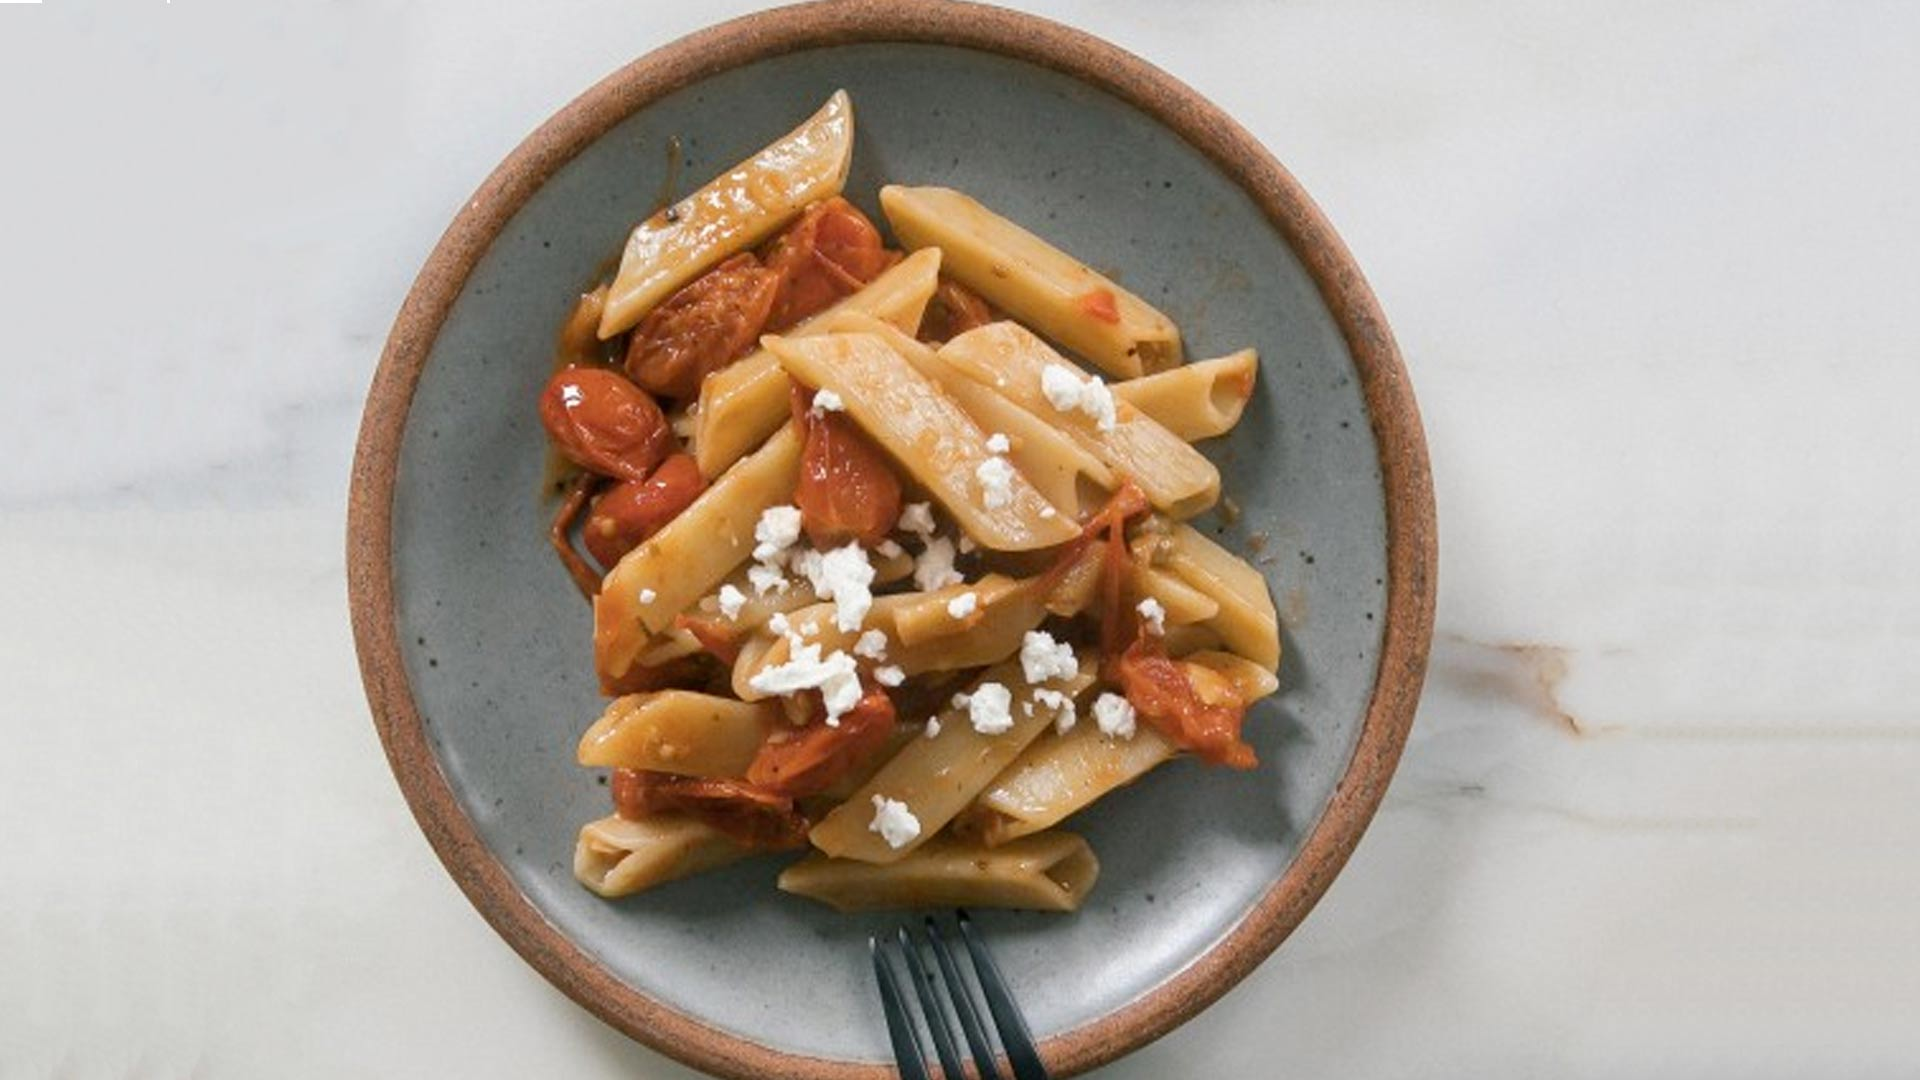 Tomato and Artichoke Pasta